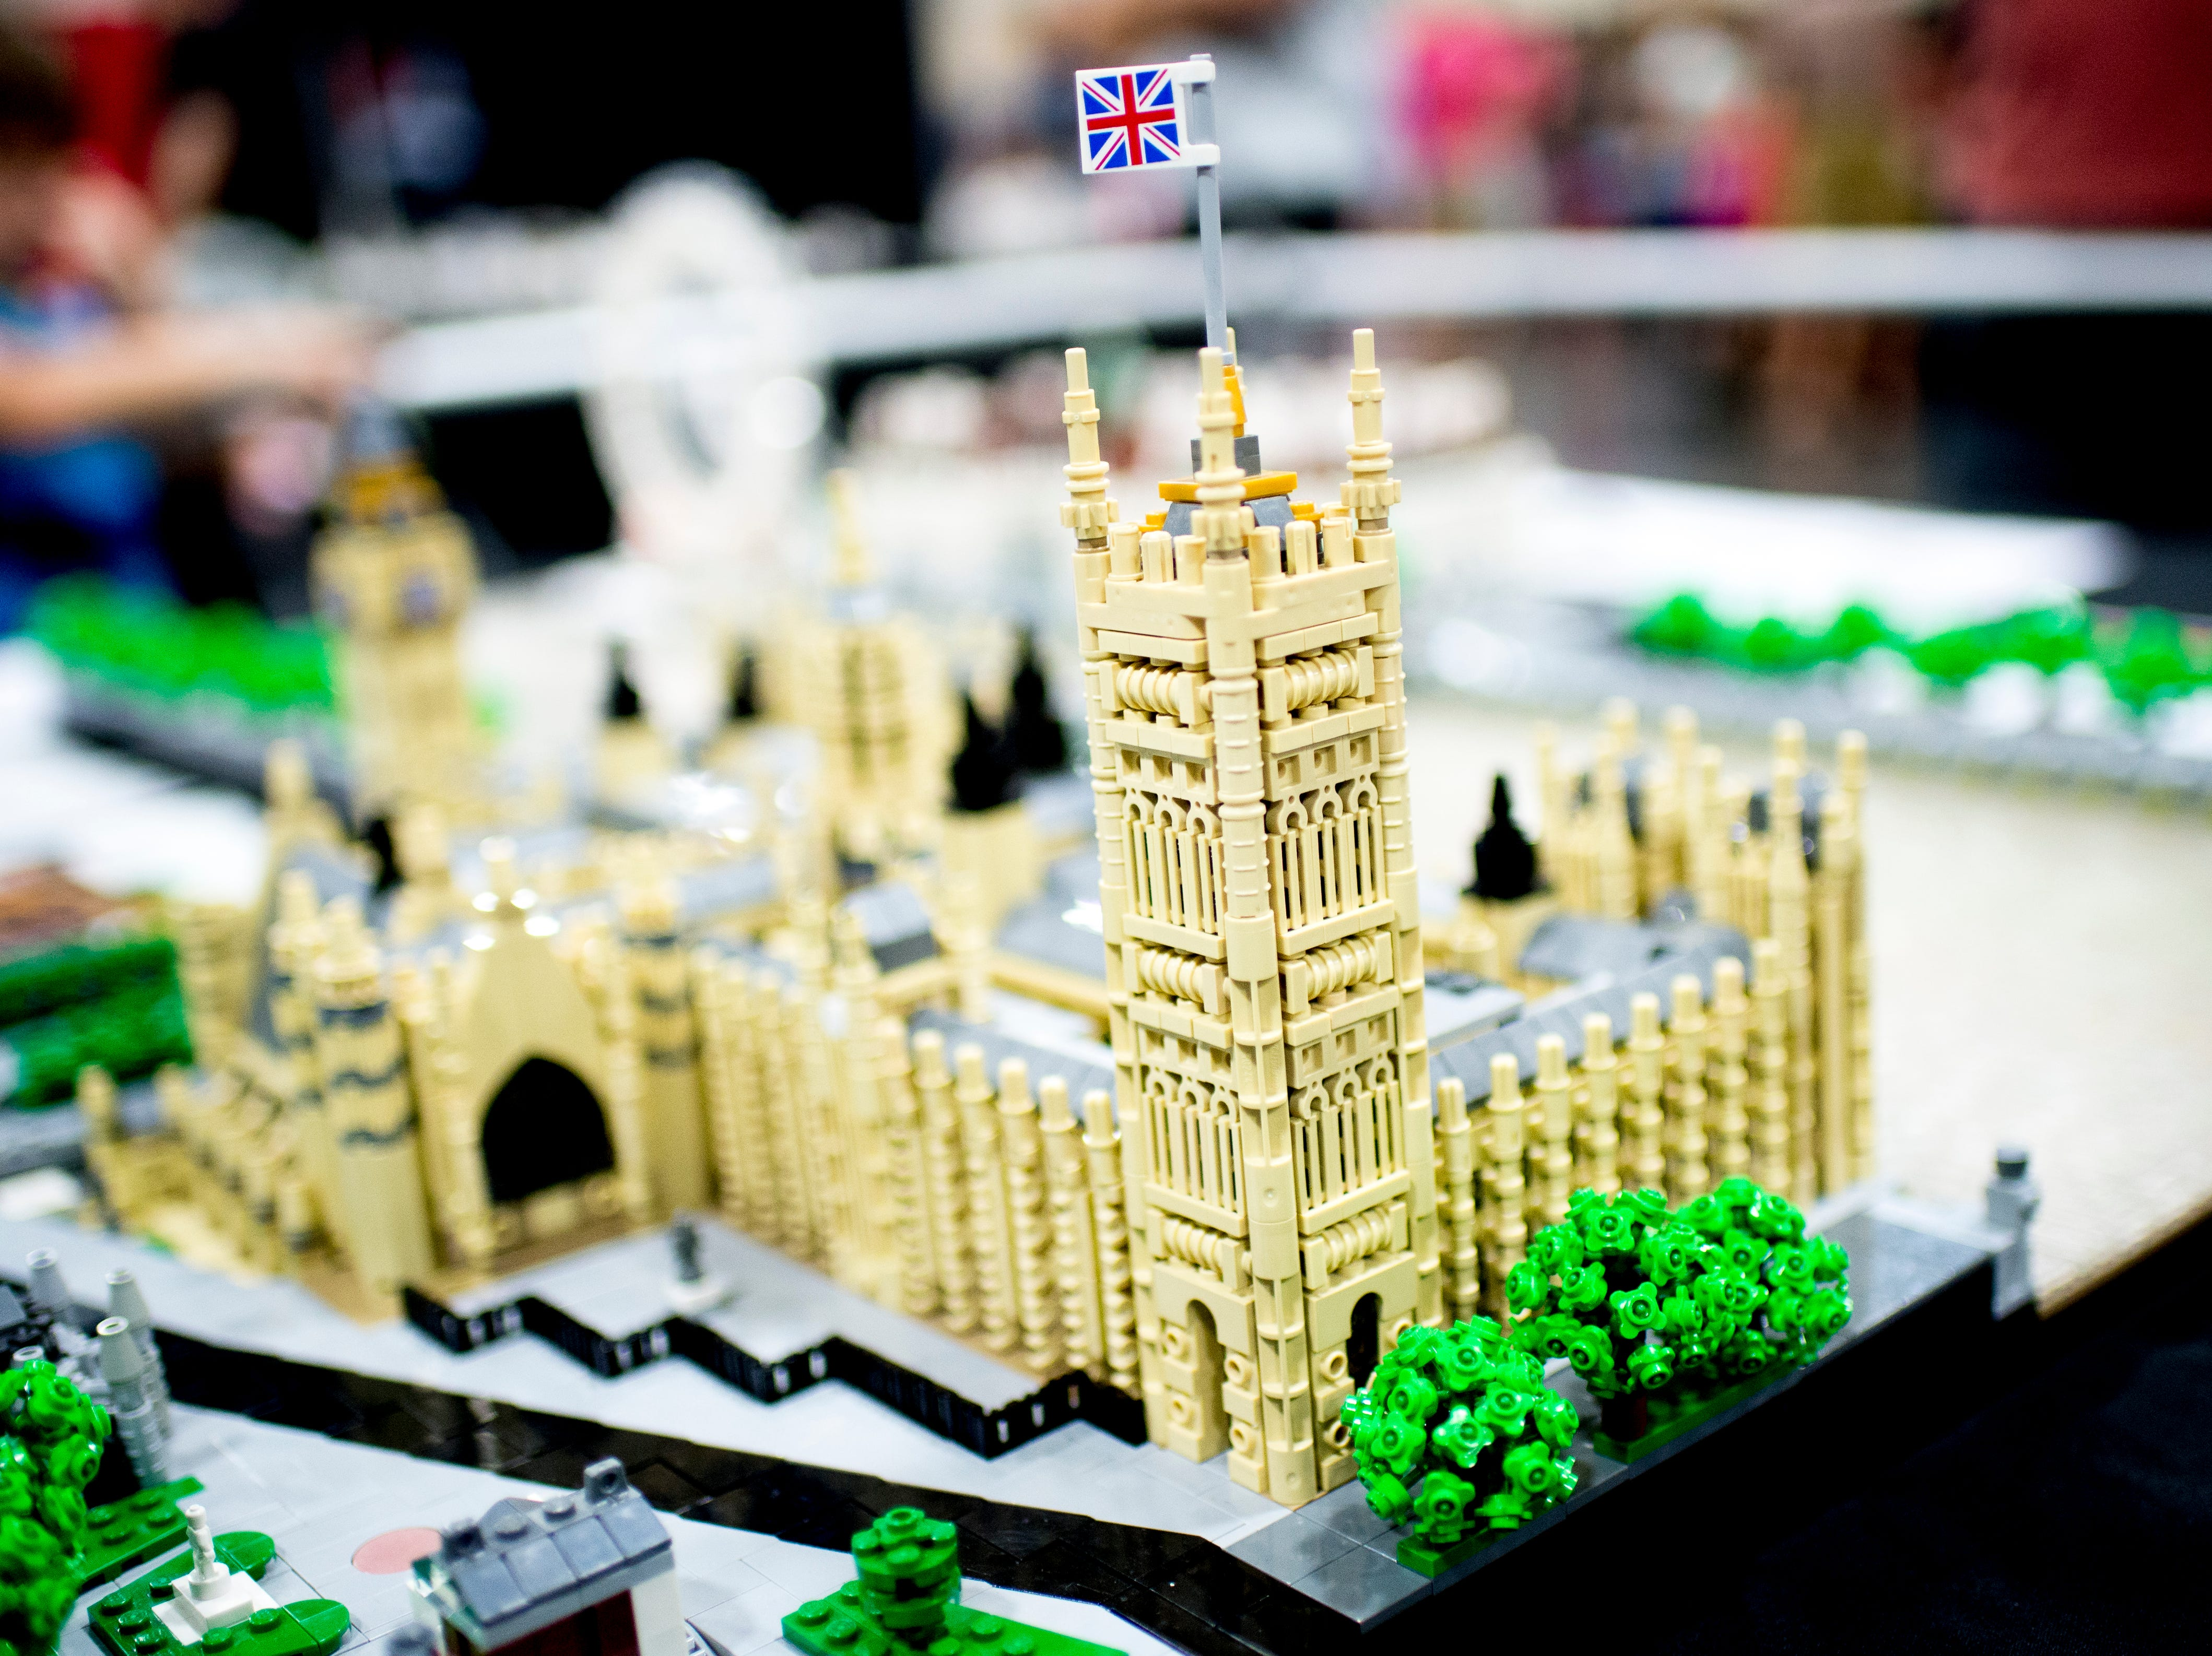 The Palace of Westminster is displayed at the BrickUniverse Knoxville LEGO Fan Expo in the Knoxville Convention Center in Knoxville, Tennessee on Saturday, August 25, 2018. Life-sized LEGO displays, over 40 world landmarks build to-scale from LEGO as well as castles, trains, and cities and other creations were on display.